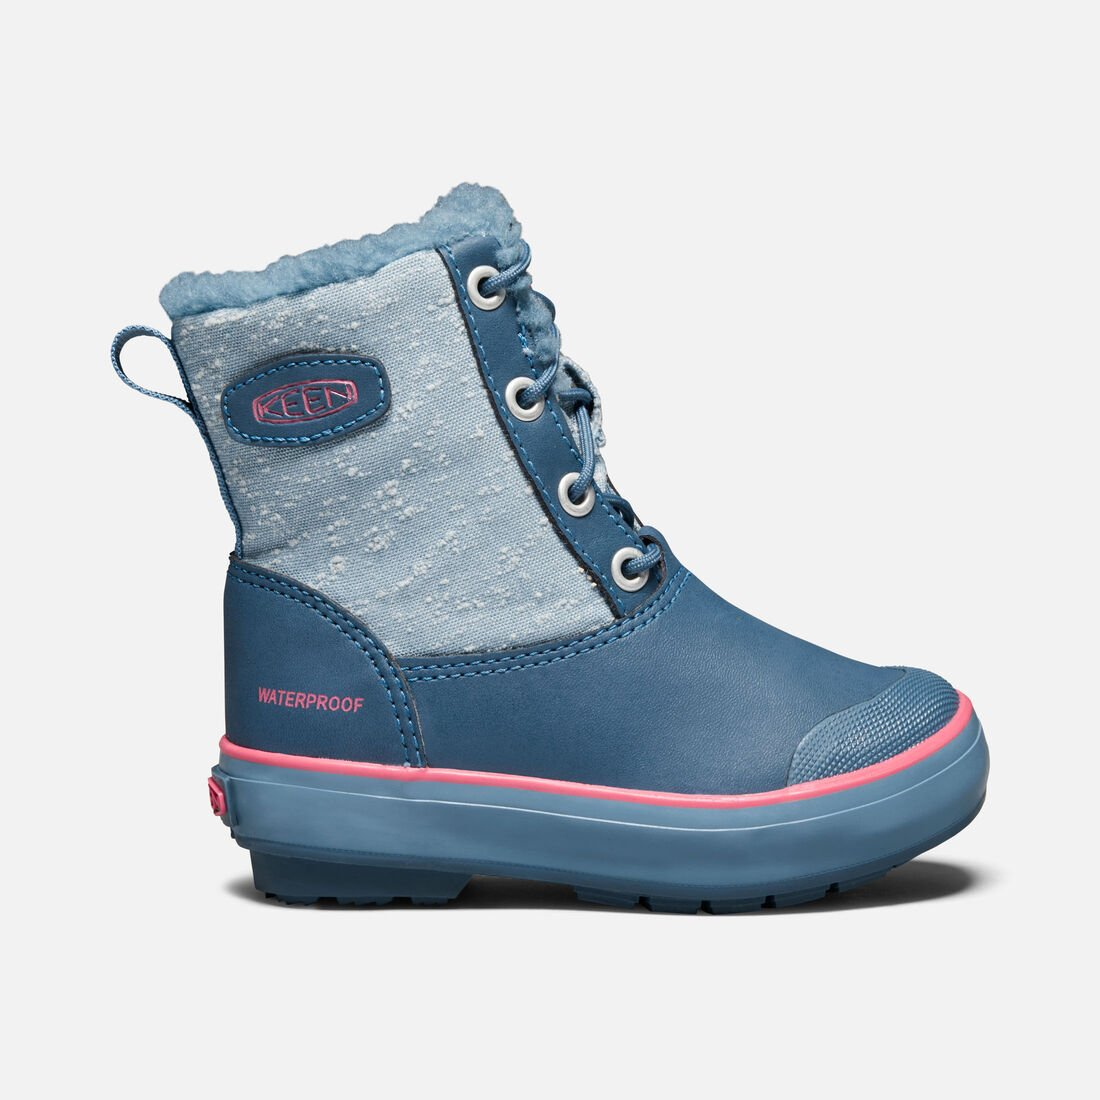 Big Kids' Elsa Boot in Captains Blue/Sugar Coral - large view.